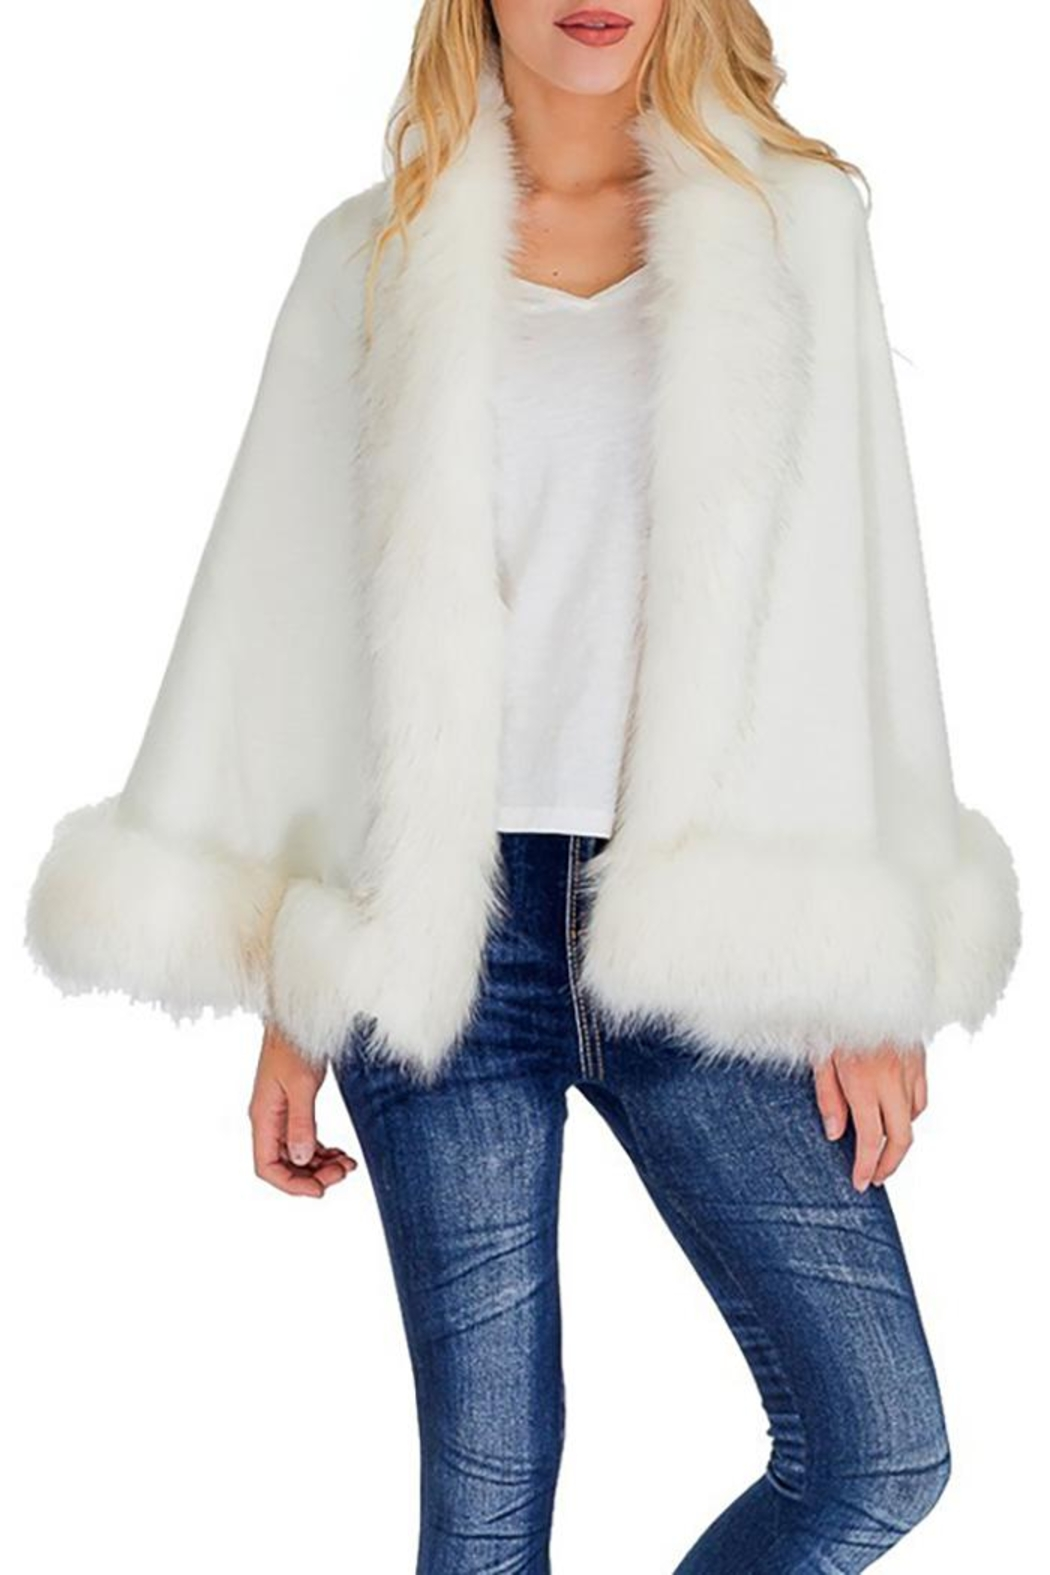 Cap Zone Single Layered Open Silhouette Cape With Faux Fur - Main Image